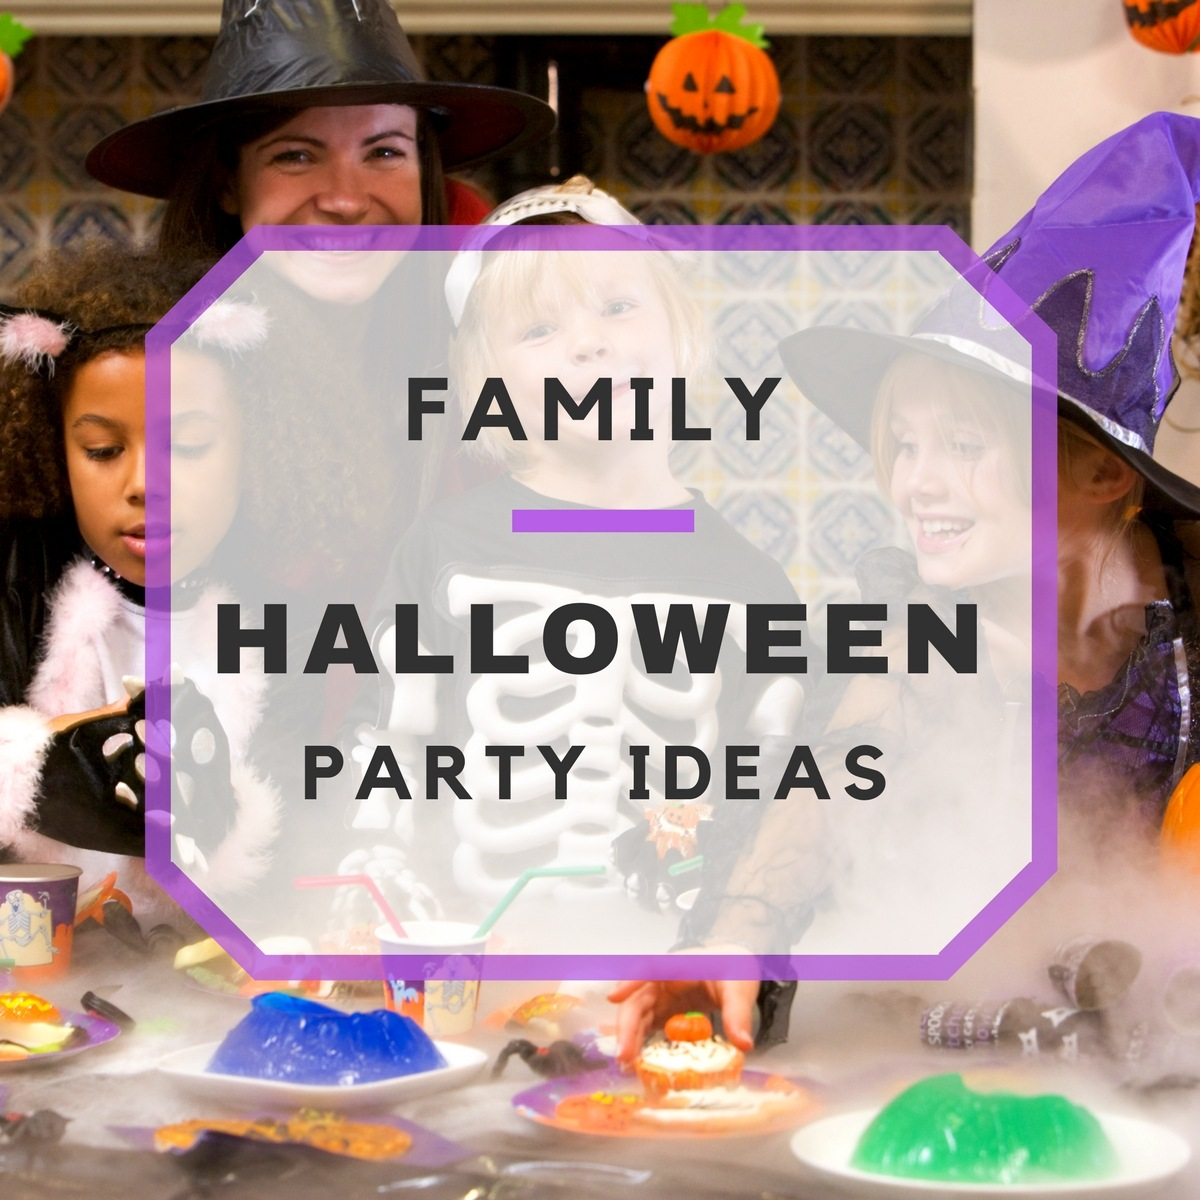 Spooky Family Halloween Party Ideas